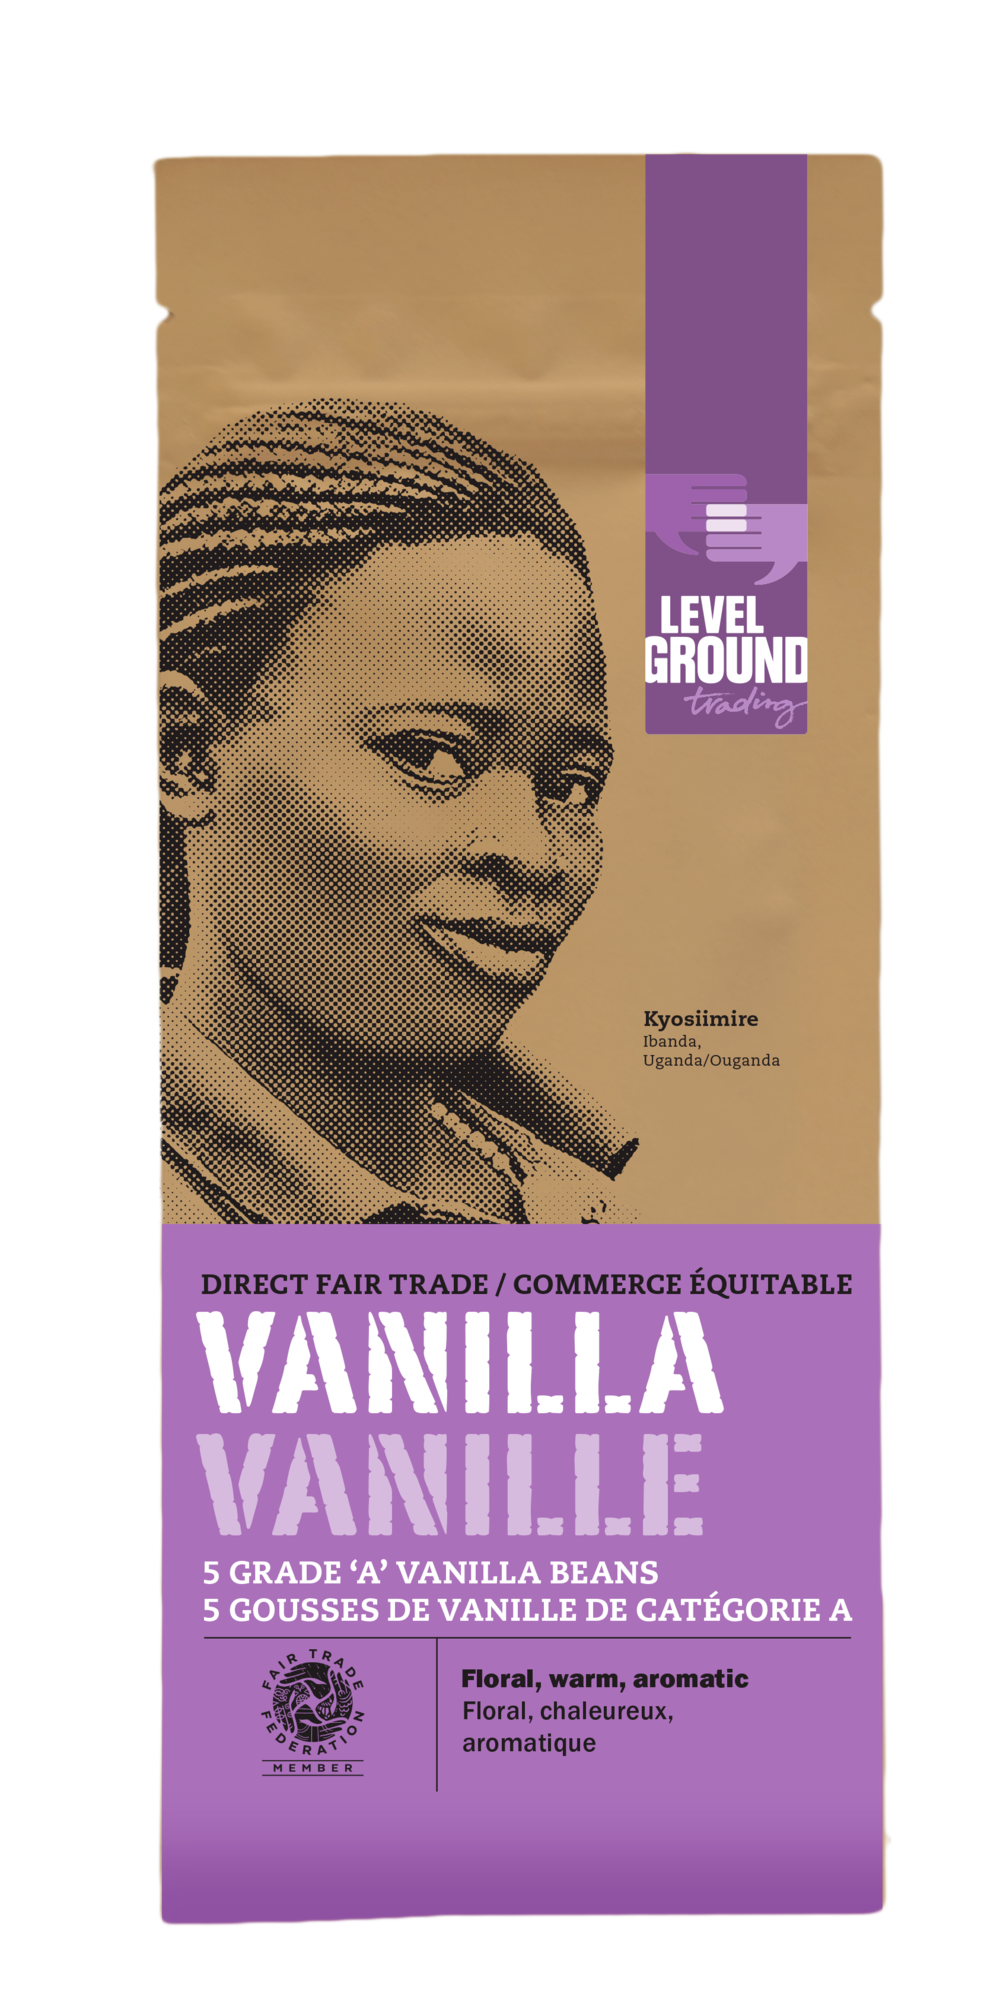 Level Ground Trading - New Vanilla Packaging